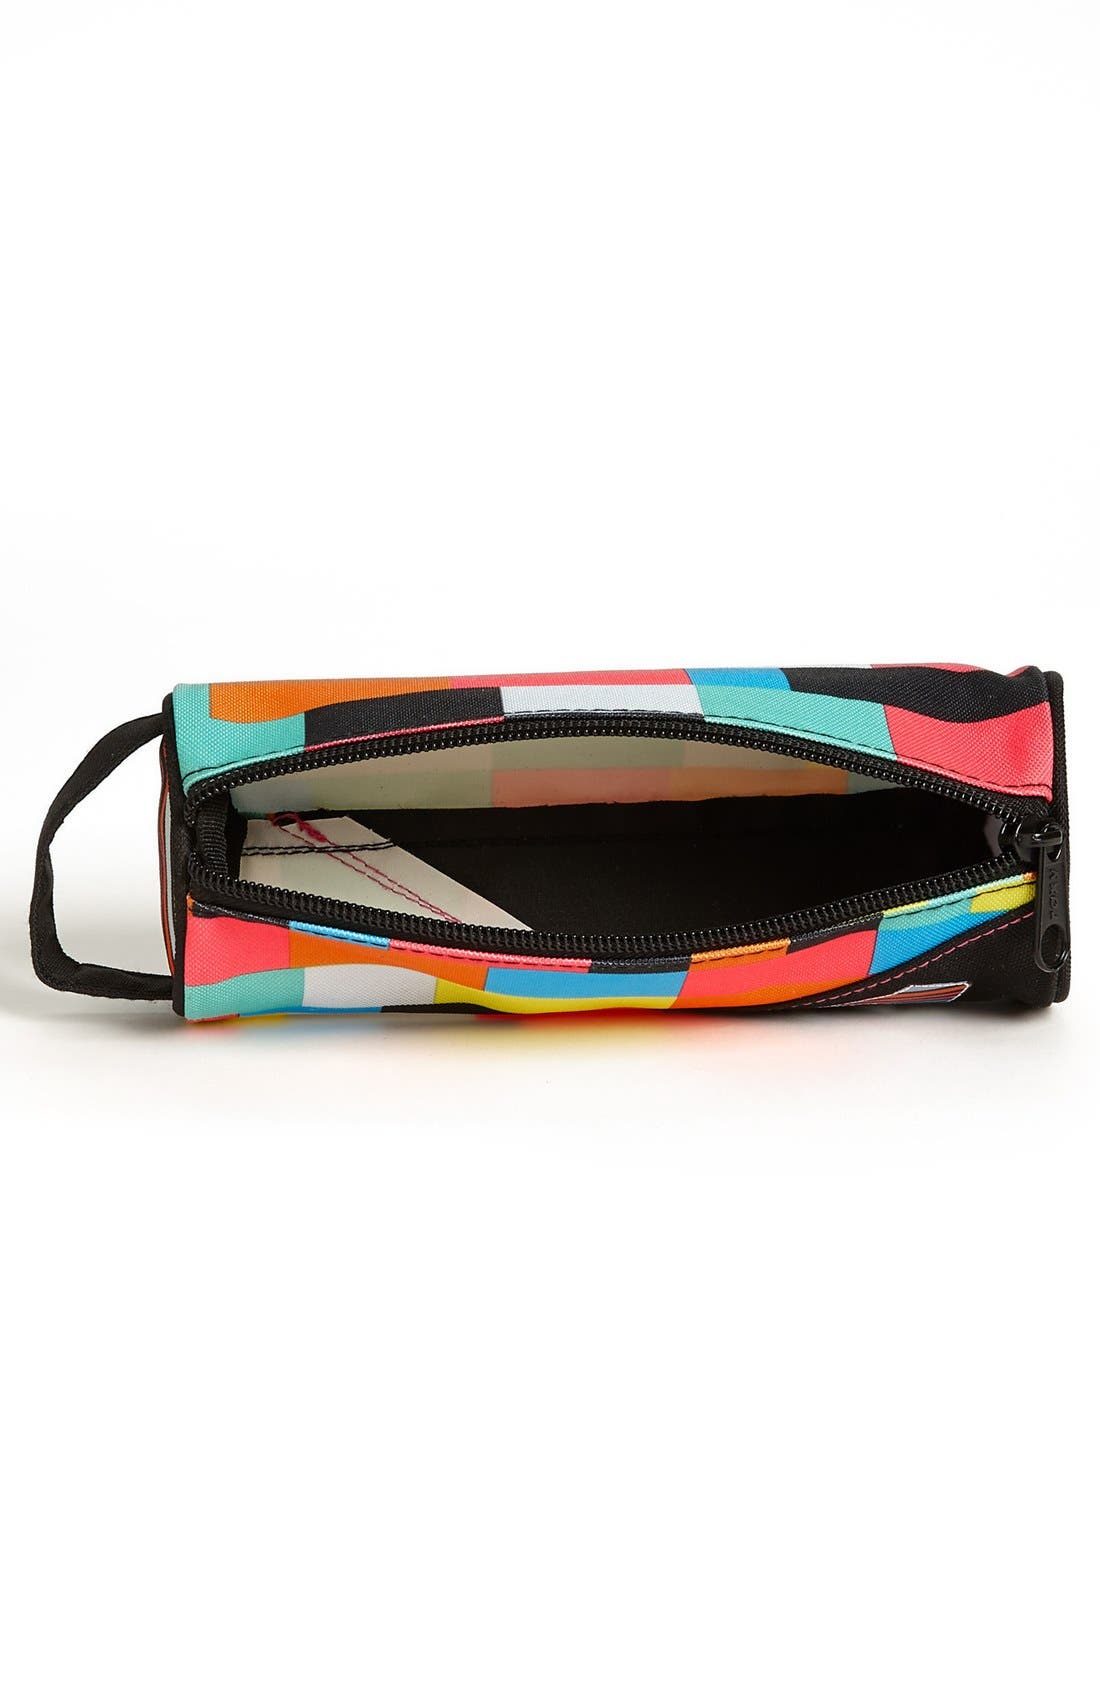 'Scribble' Pencil Case,                             Alternate thumbnail 2, color,                             Multi/ Black/ Pink/ Blue